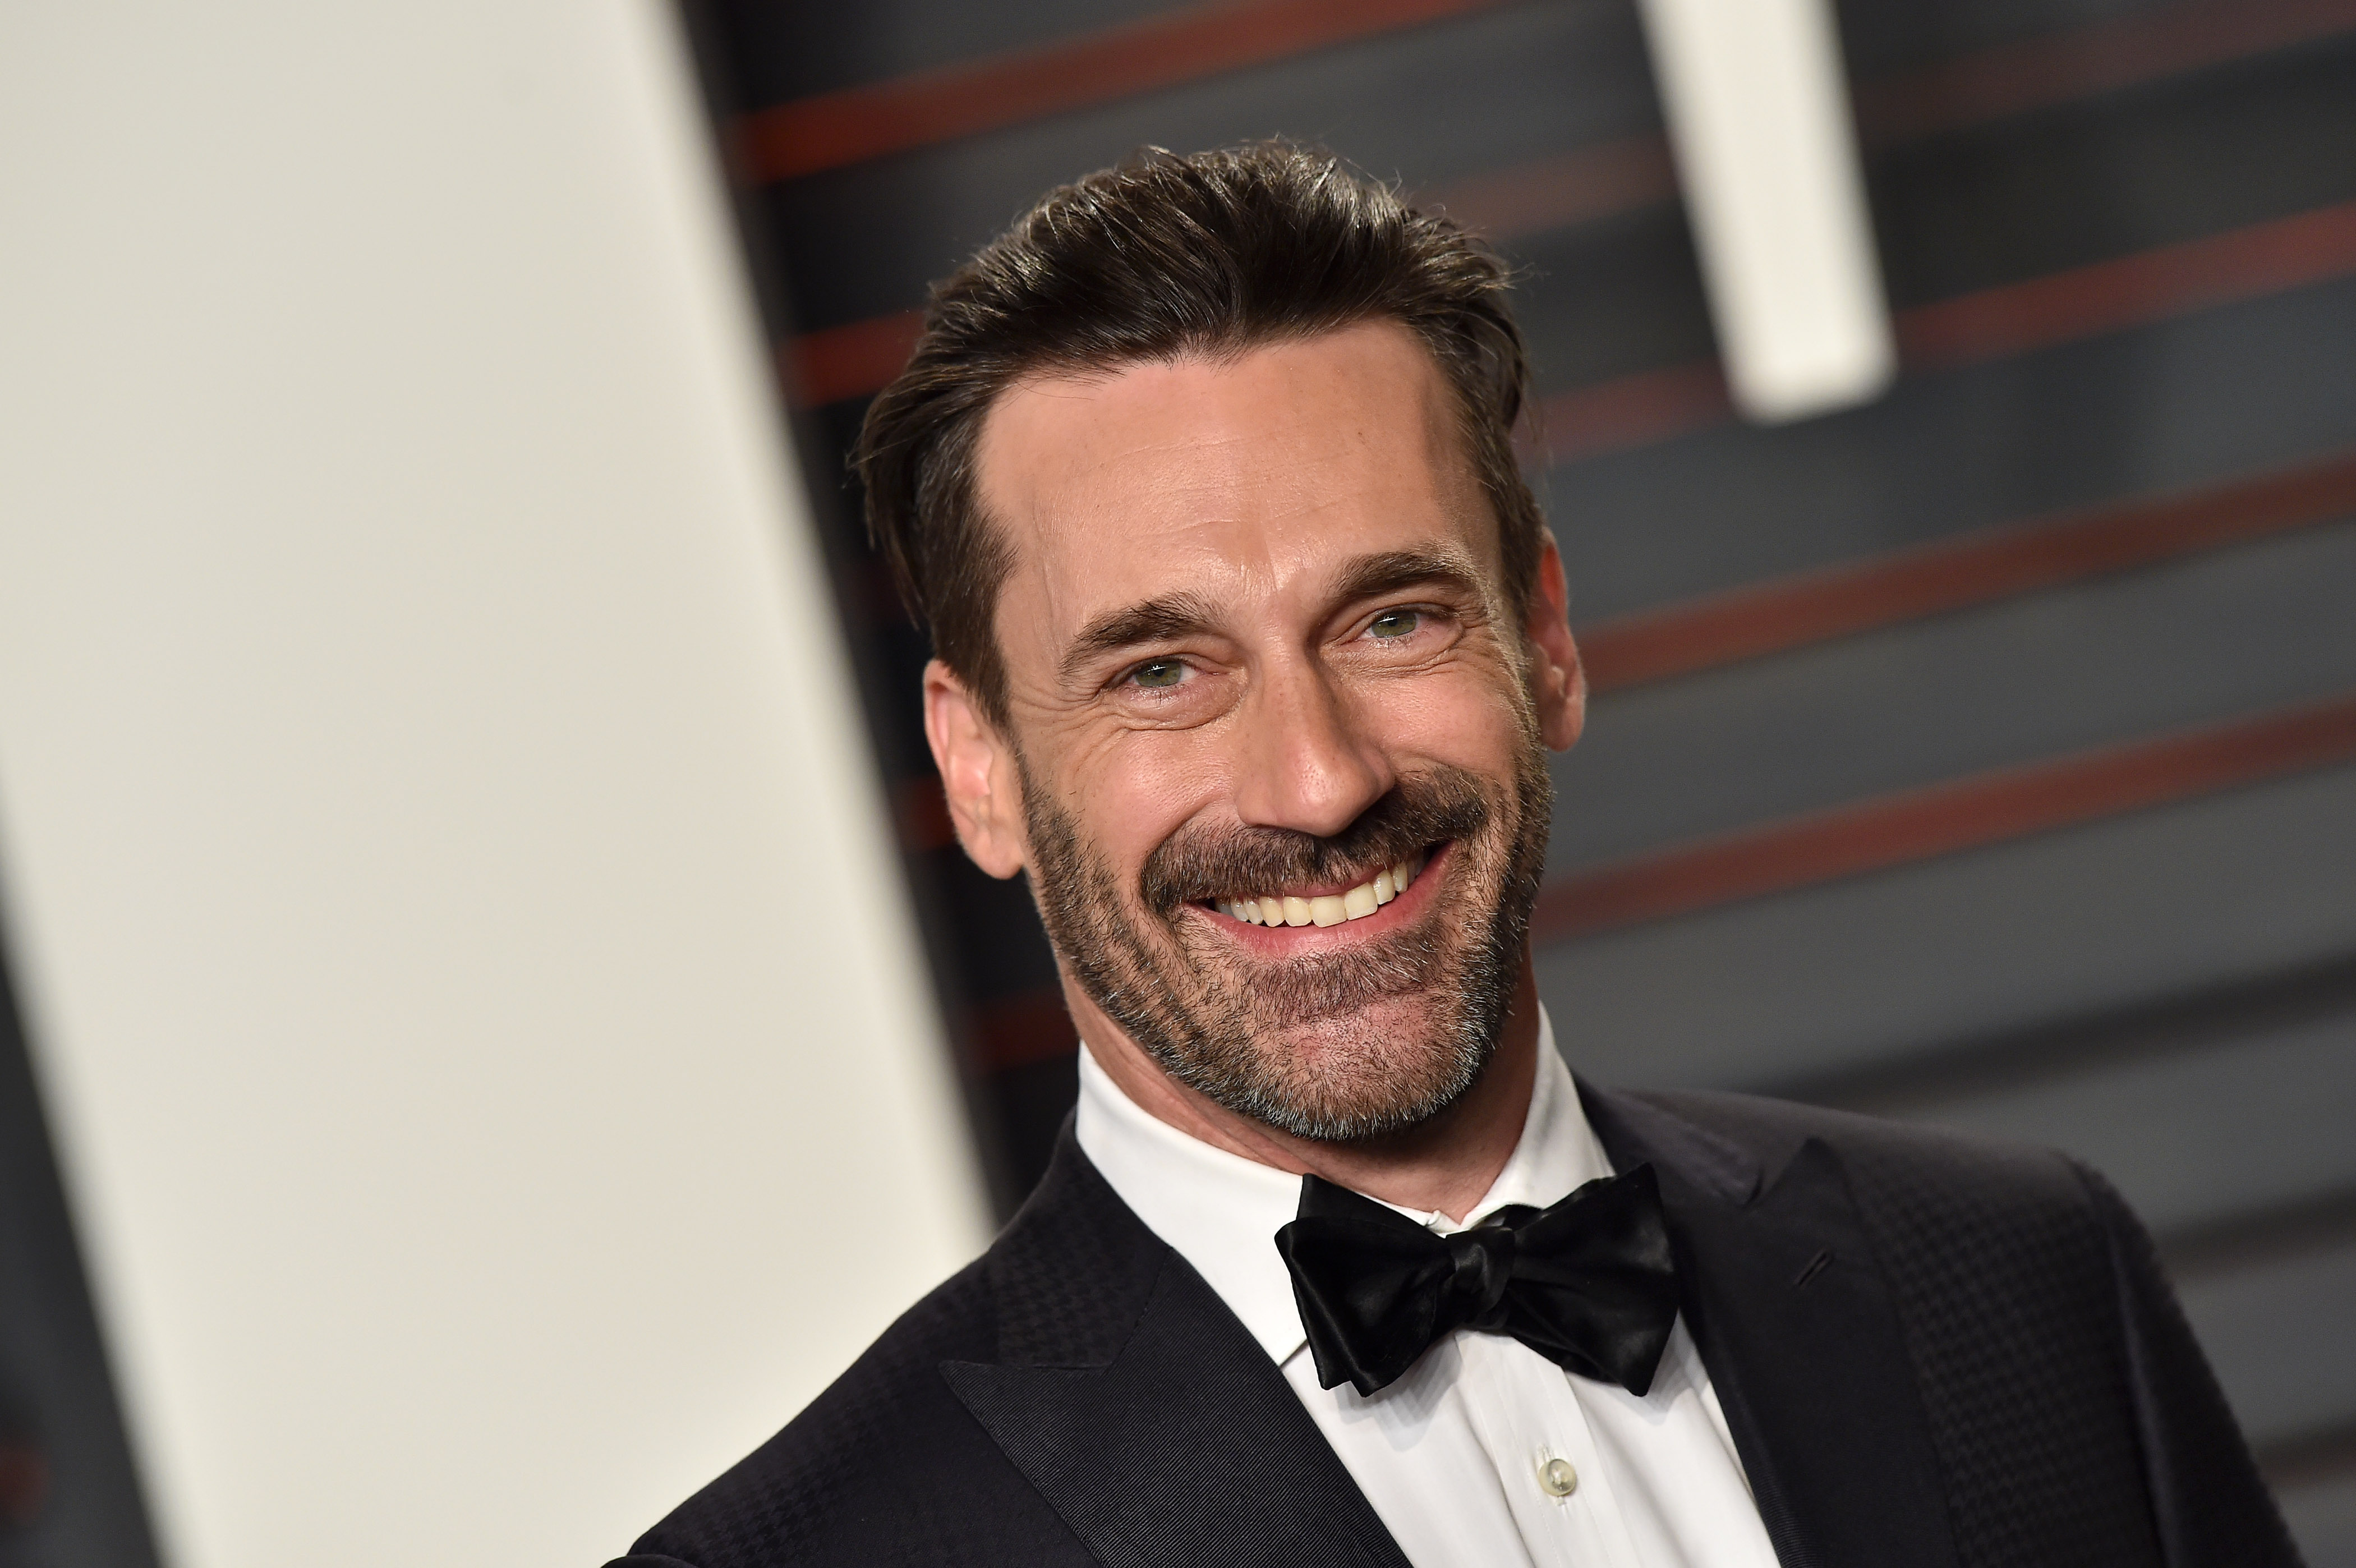 Actor Jon Hamm arrives at the 2016 Vanity Fair Oscar Party Hosted By Graydon Carter at Wallis Annenberg Center for the Performing Arts on February 28, 2016 in Beverly Hills, California.